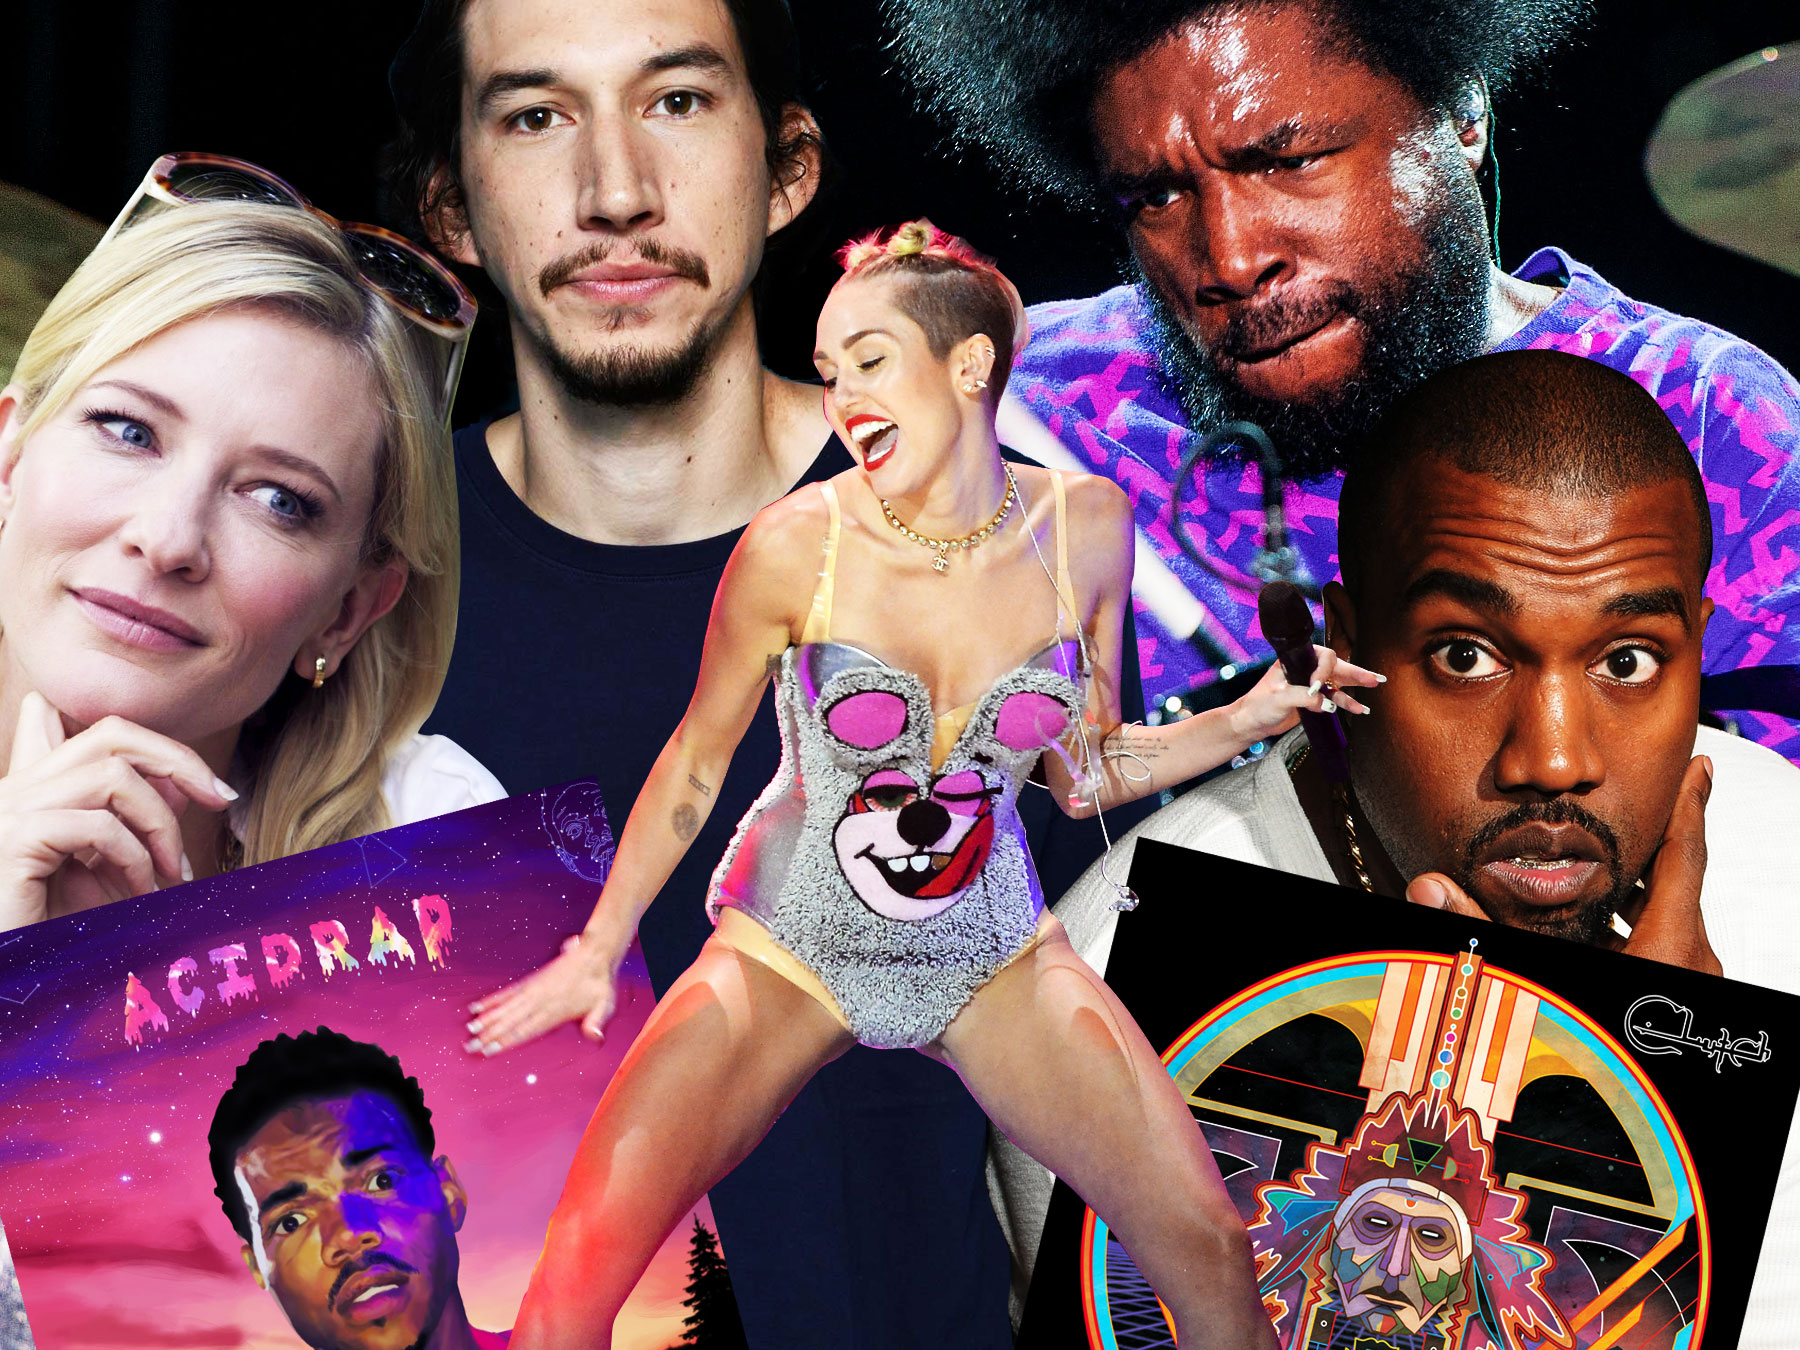 Rolling Stone's Best of 2013